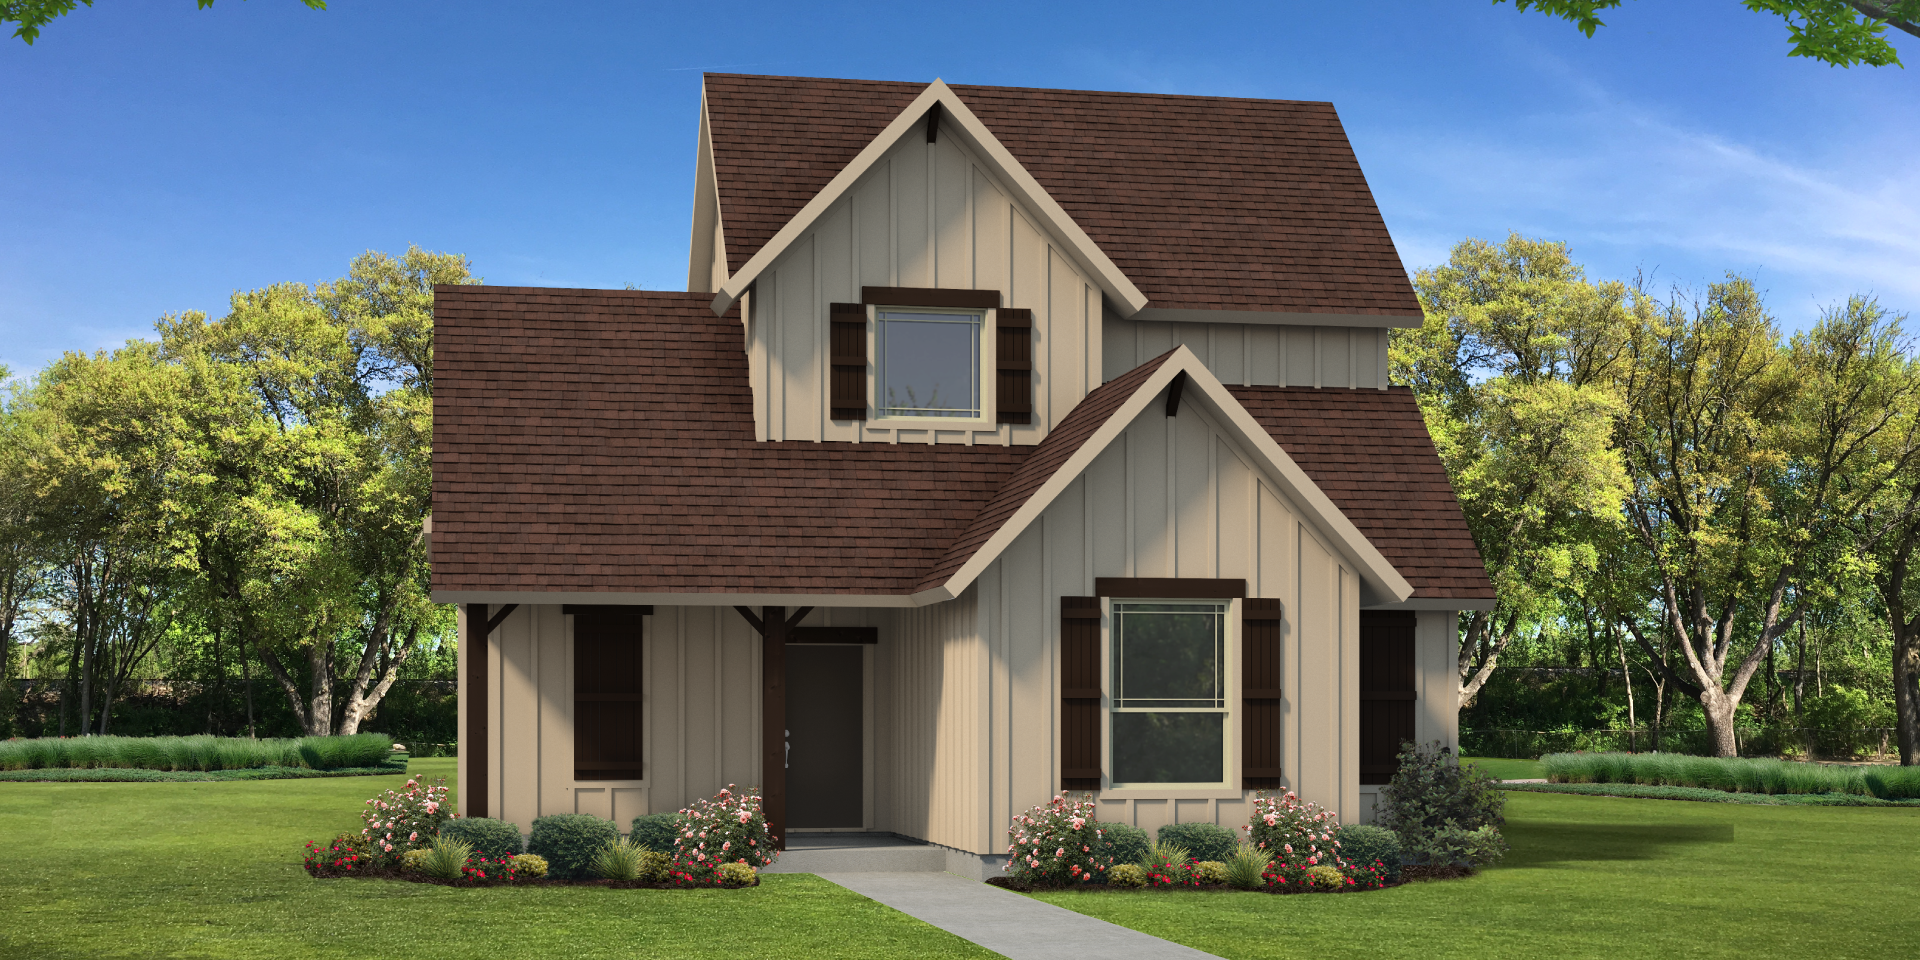 The Victoria Custom Home Plan from Tilson Homes